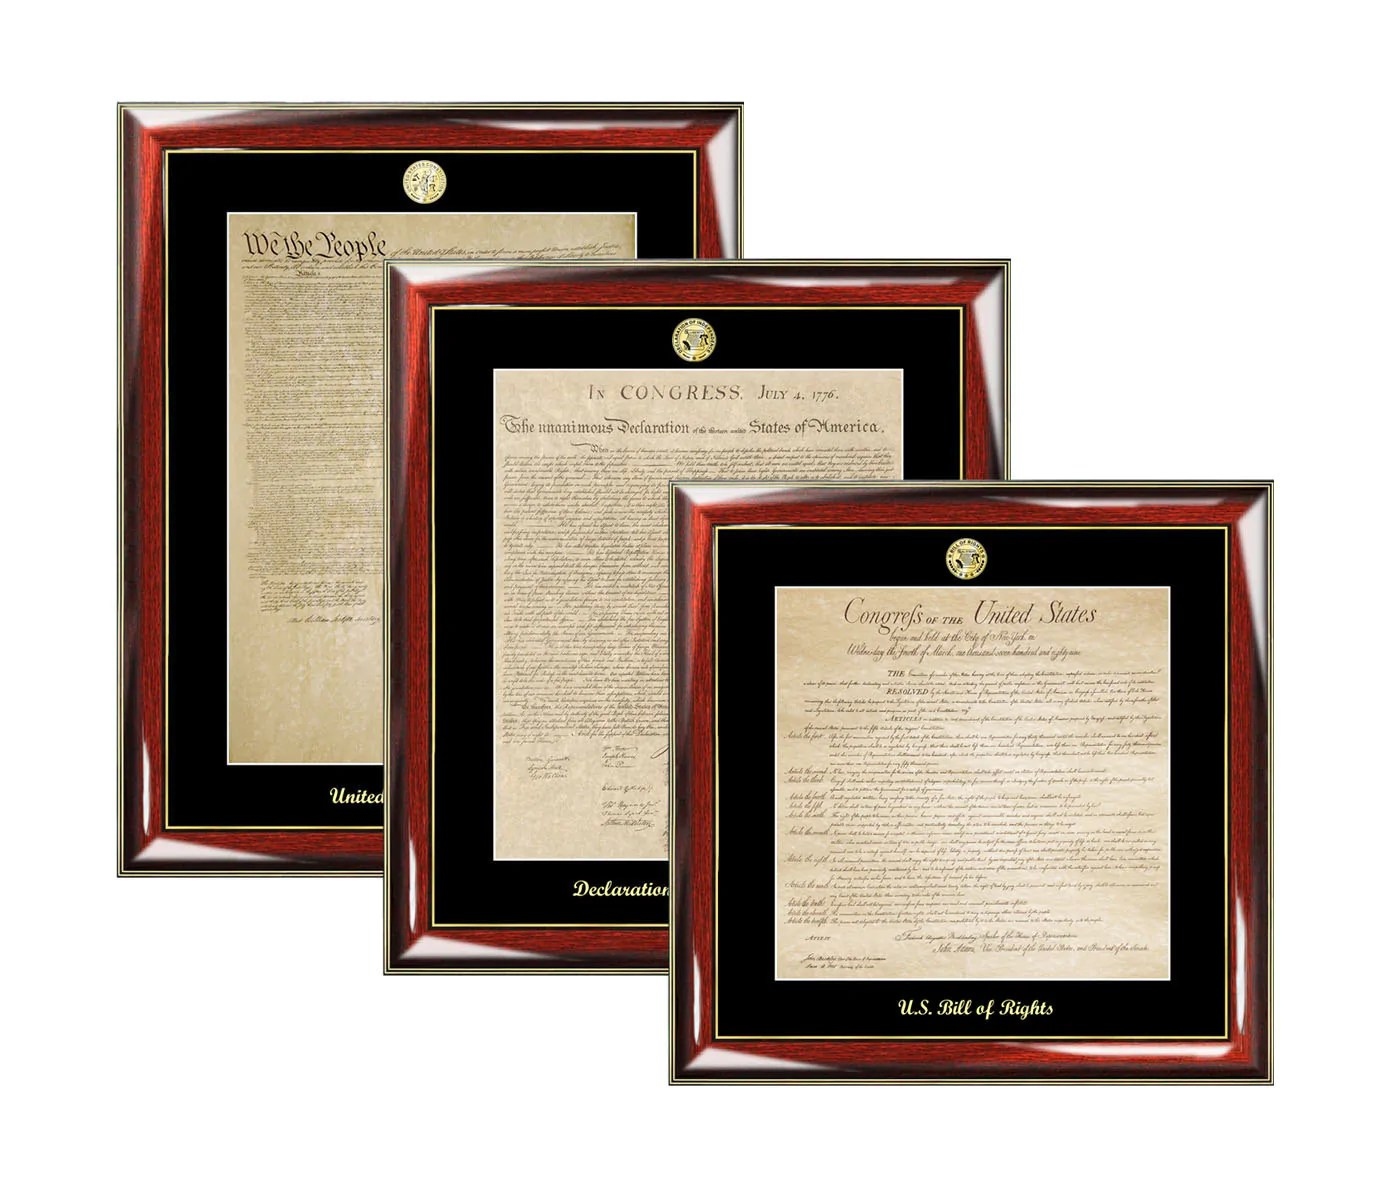 Cheery Bill Lawyers Making Partner Declaration Independence Frame Set Print Gembossed Logo Plaque Law Law School Graduation Gift Congratulation New Lawyer Attorney Gifts Lawyers Uk Gifts gifts Gifts For Lawyers